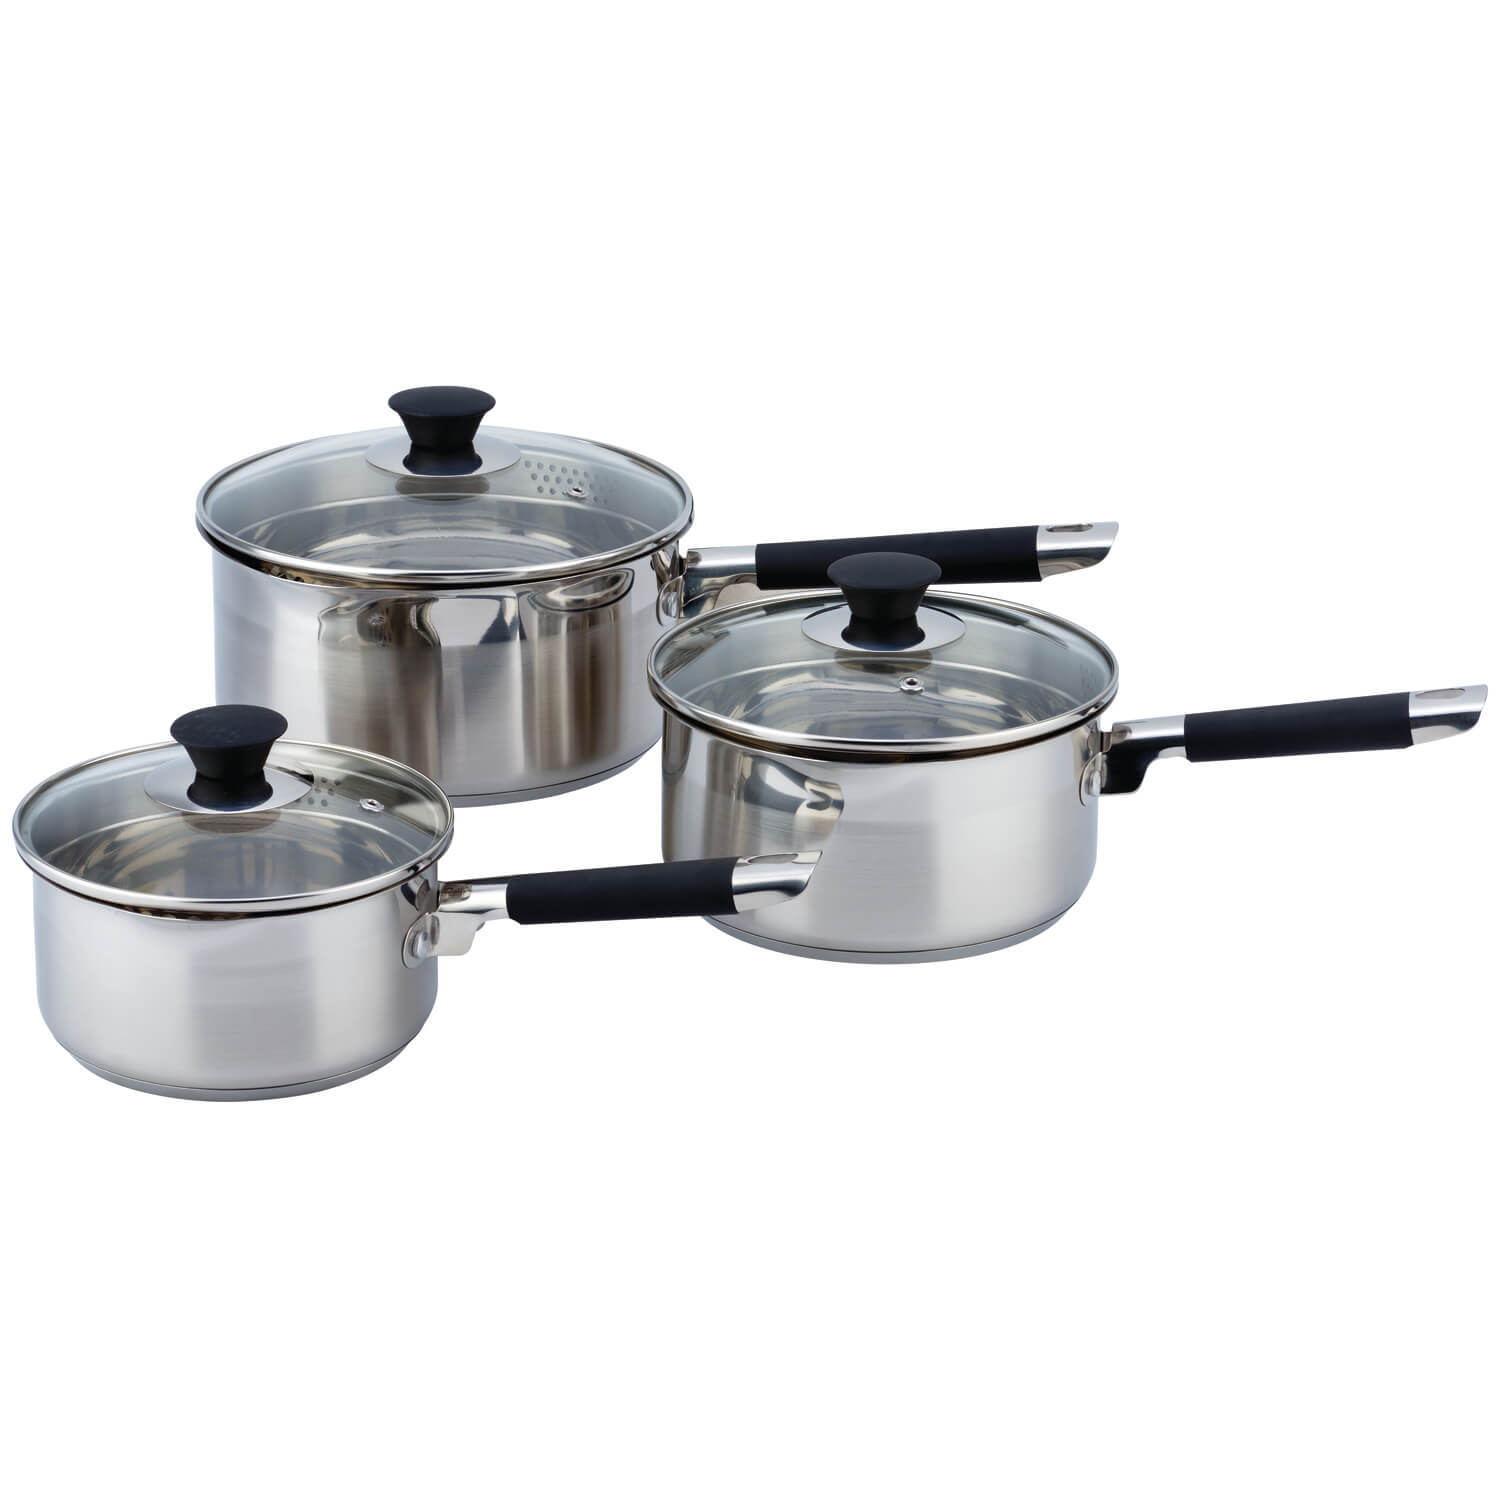 3 Pièces Cuisine Cuisine Draining 3 Piece Cookware Set Home Store 43 More